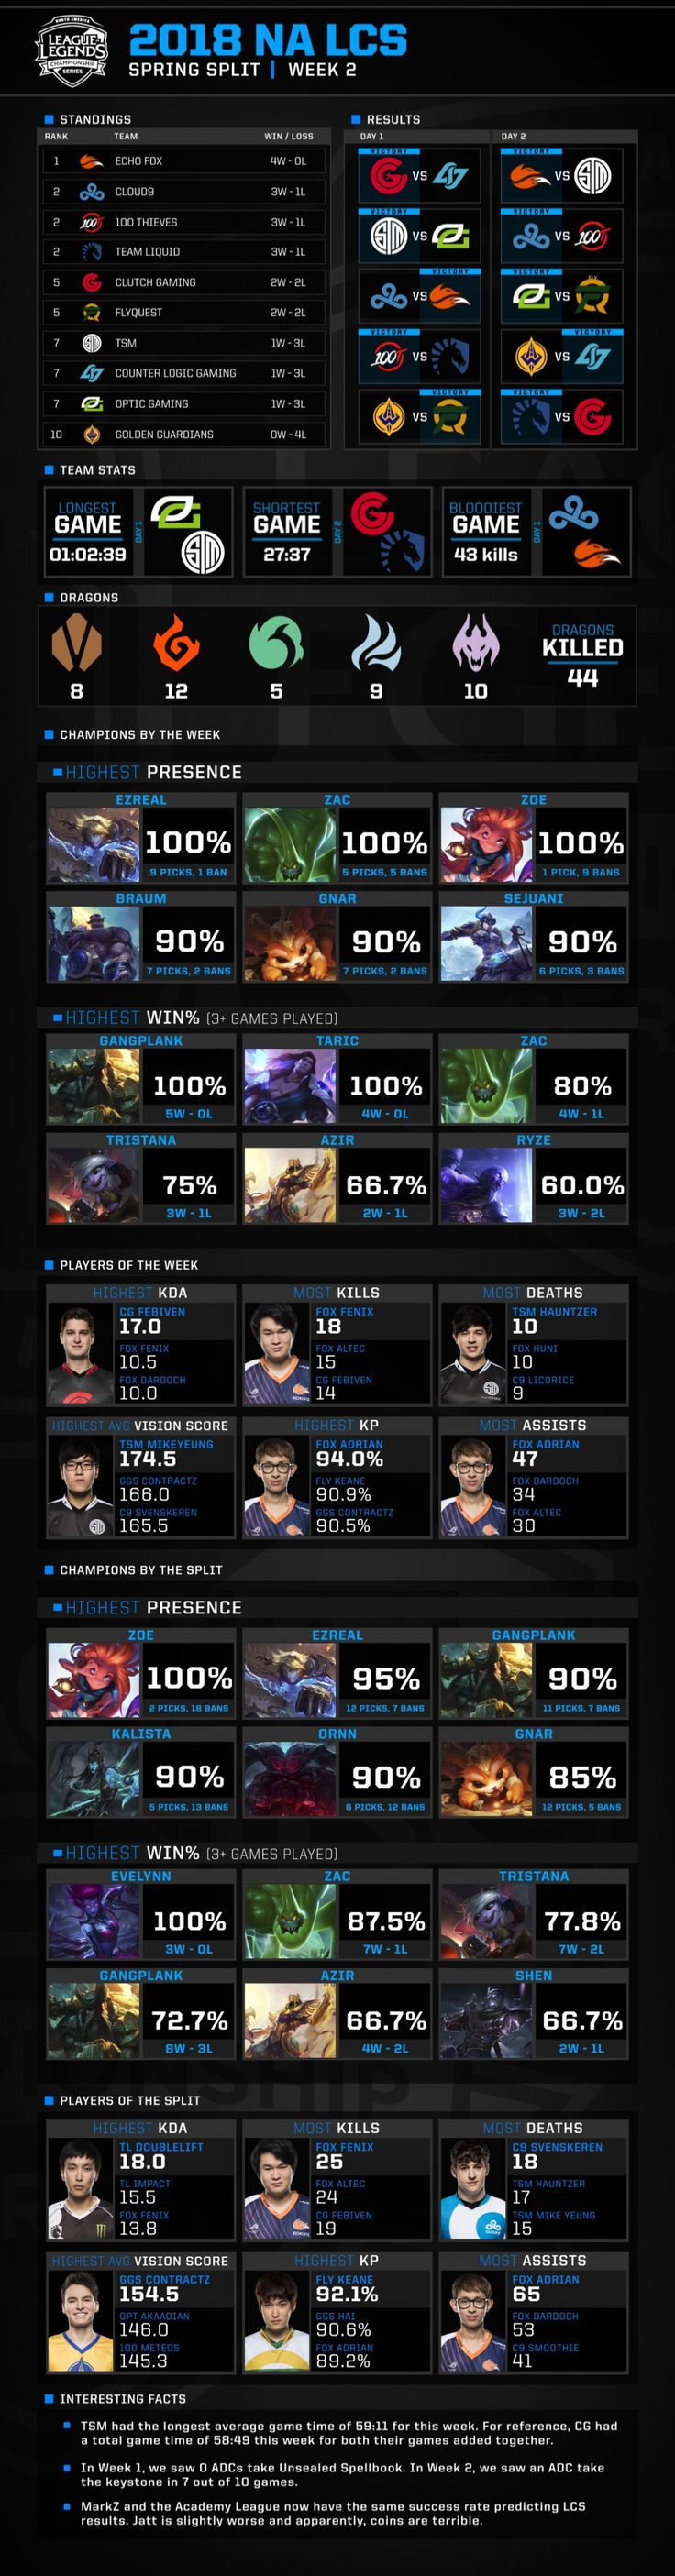 2018 NA LCS Stats Breakdown Week 2 https://riot-web-cdn.s3-us-west-1.amazonaws.com/lolesports/s3fs-public/styles/centered/public/nalcs_infographic_spring_week2_v3.jpg?CkWqJVYVAlWW3H_ZVQ8f_3Mo11Nh8RgV&itok=XuZHEn1x #games #LeagueOfLegends #esports #lol #riot #Worlds #gaming